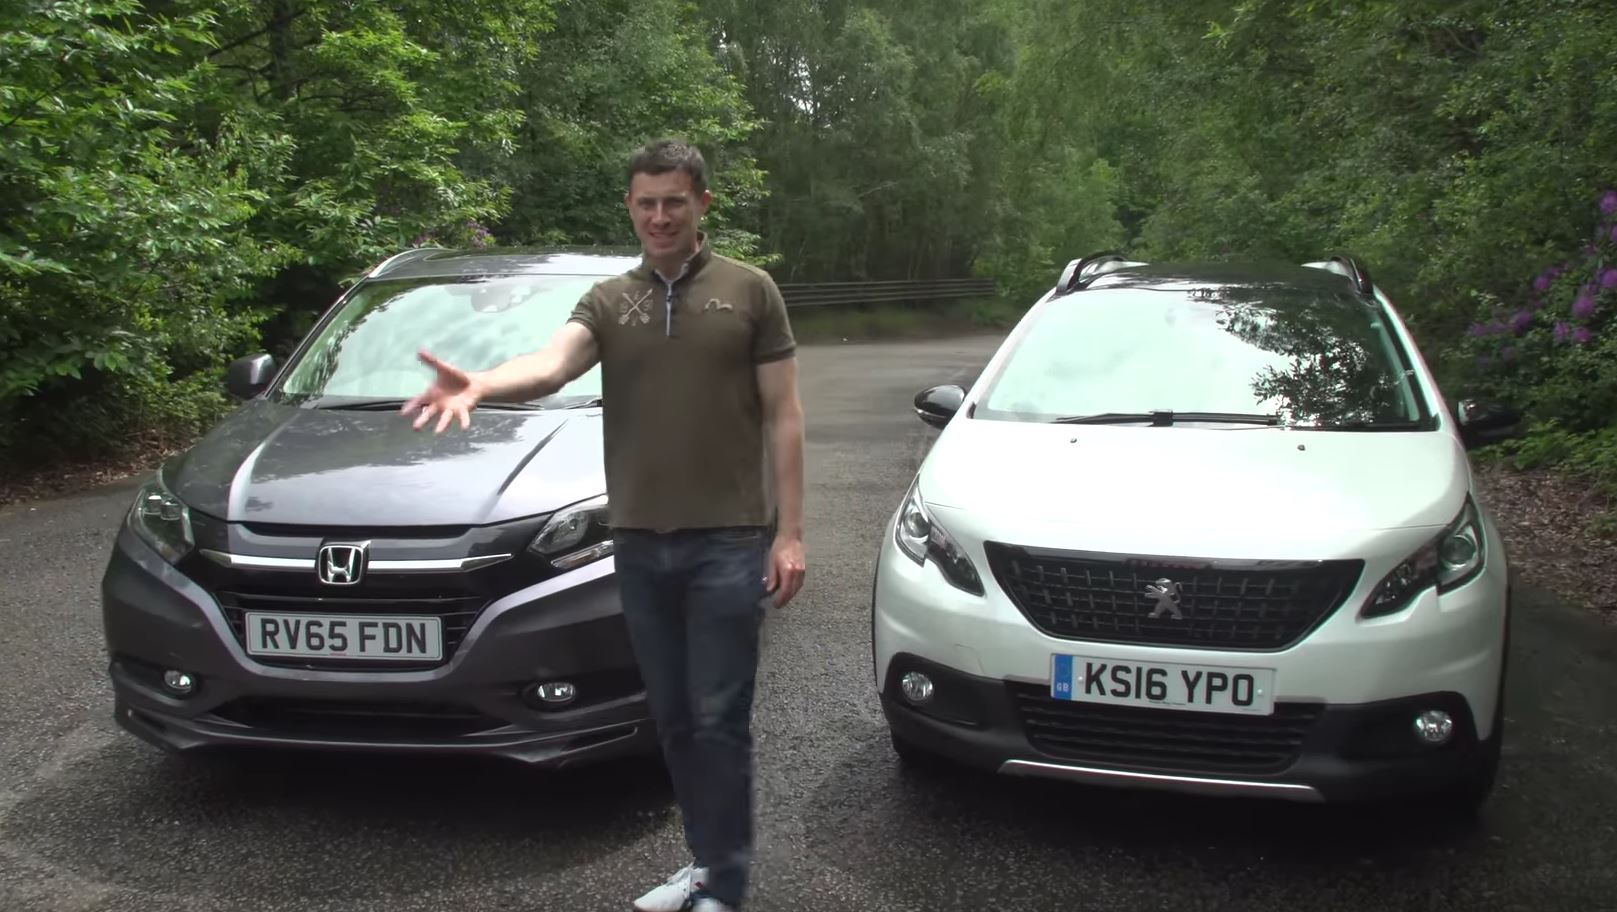 peugeot to launch 2008 rx /1008 3-door crossover coupe in 2016